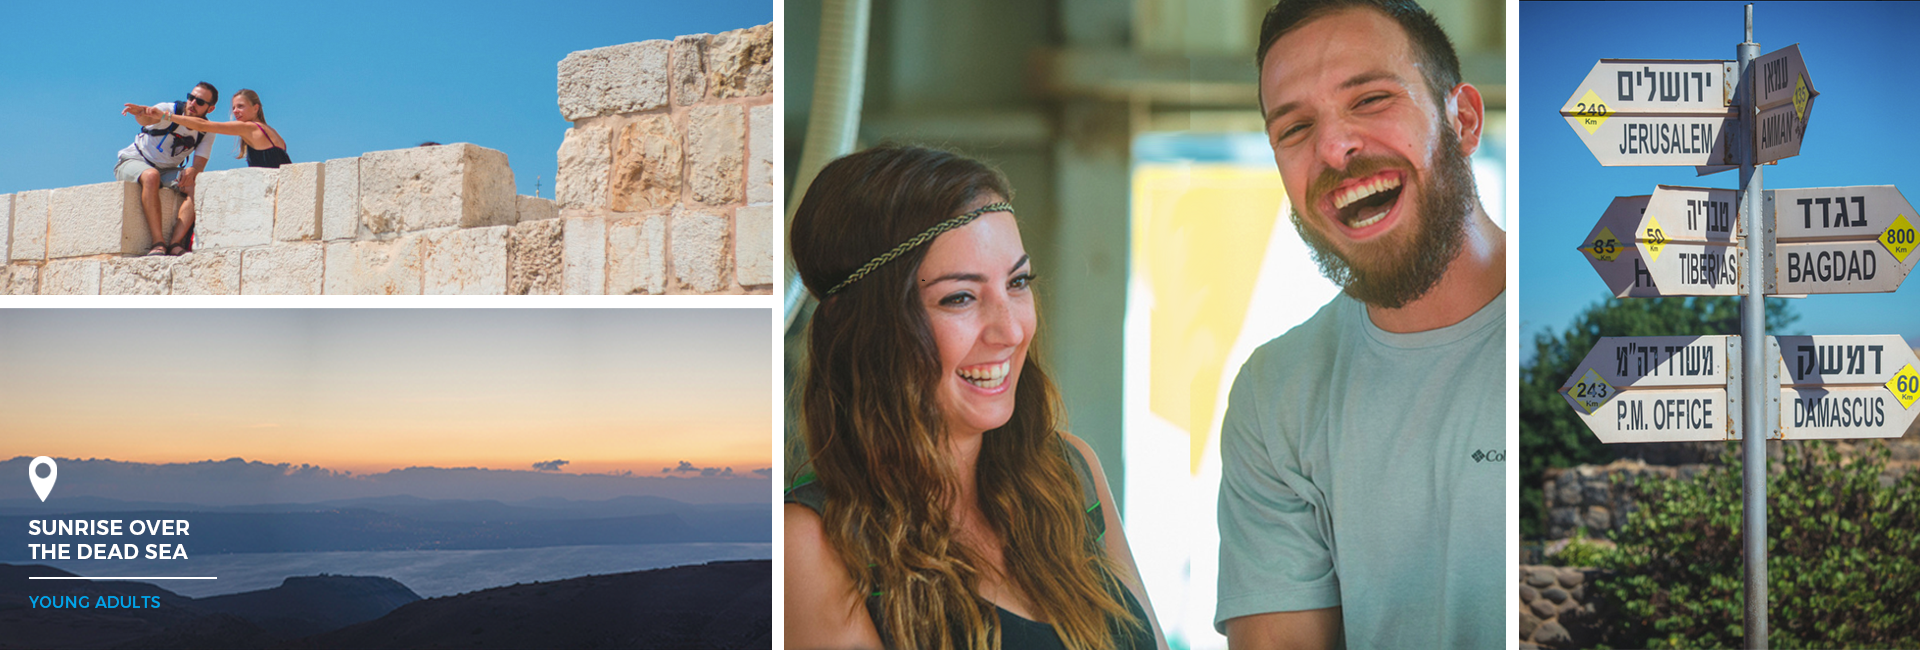 Trips to Israel for Young Adults